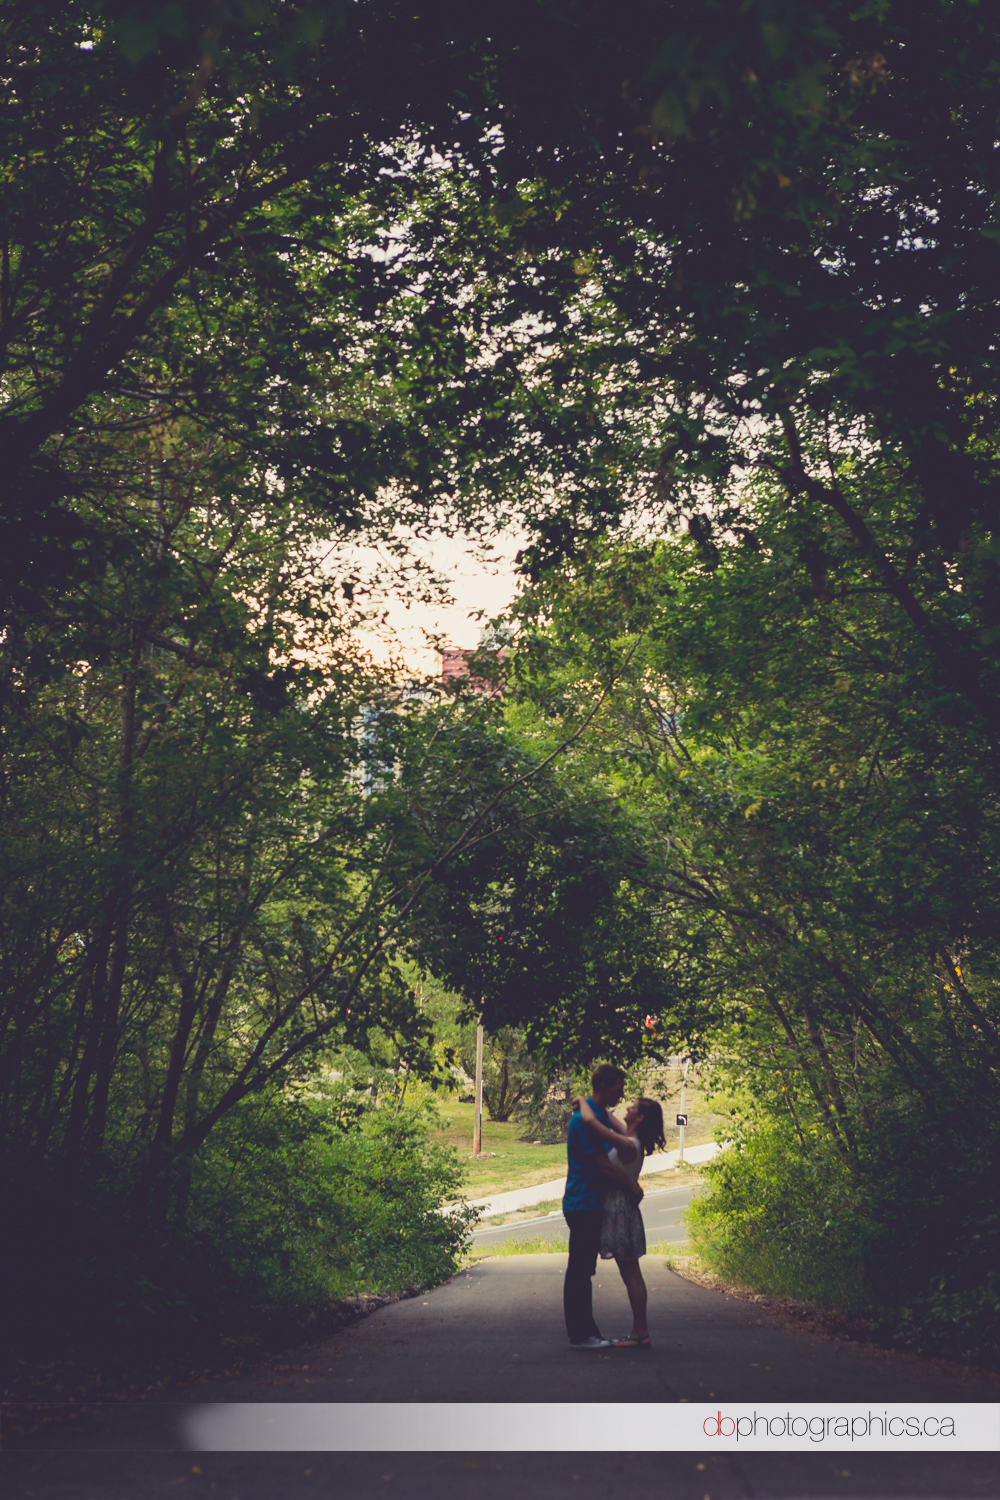 Cassie & Drew - Engagement Session - 20150820 - 0044.jpg